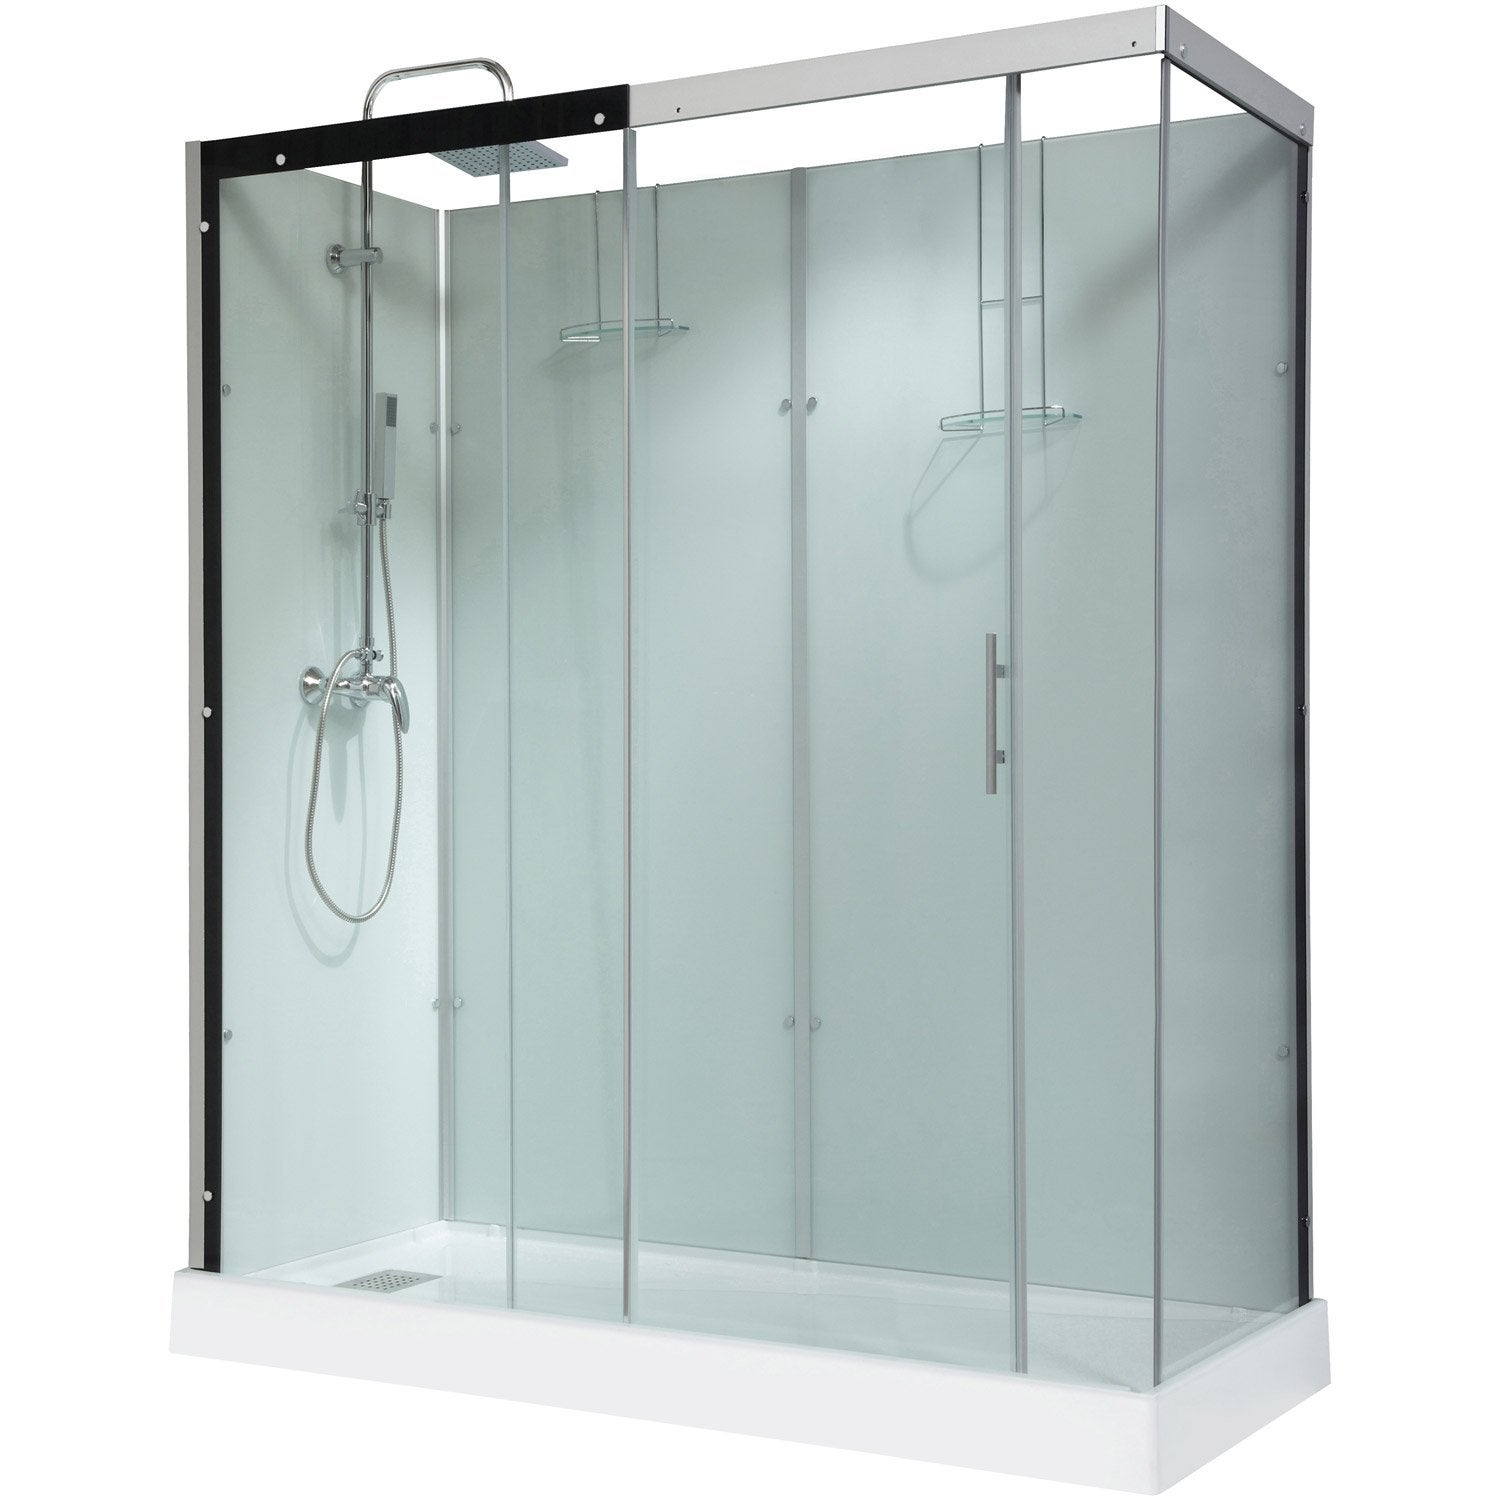 cabine de douche rectangulaire 180x80 cm thalaglass 2 mitigeur leroy merlin. Black Bedroom Furniture Sets. Home Design Ideas